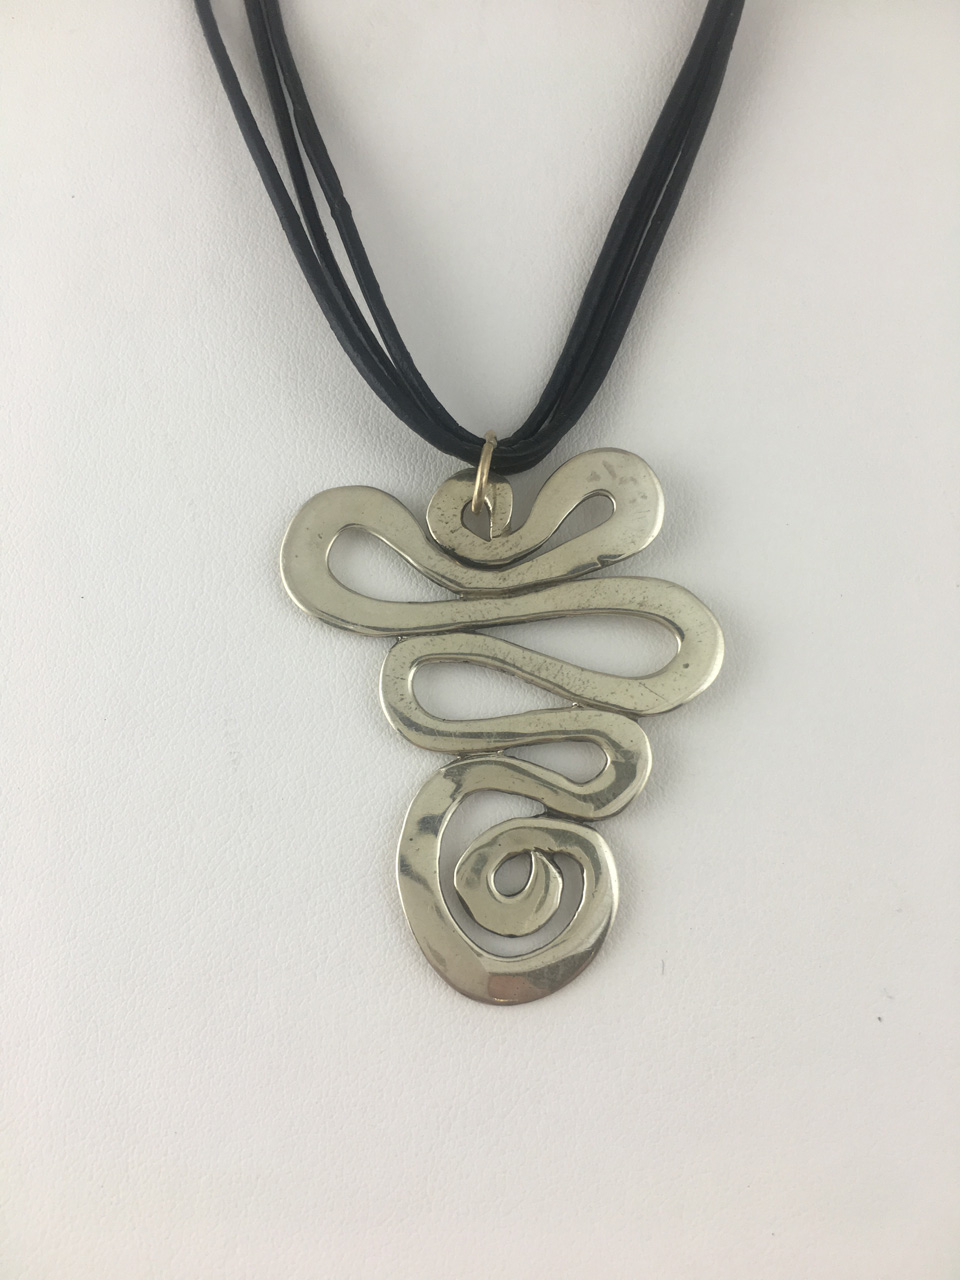 Silver with Leather Cord Long Hammered Swirl Necklace by Dian Anderson